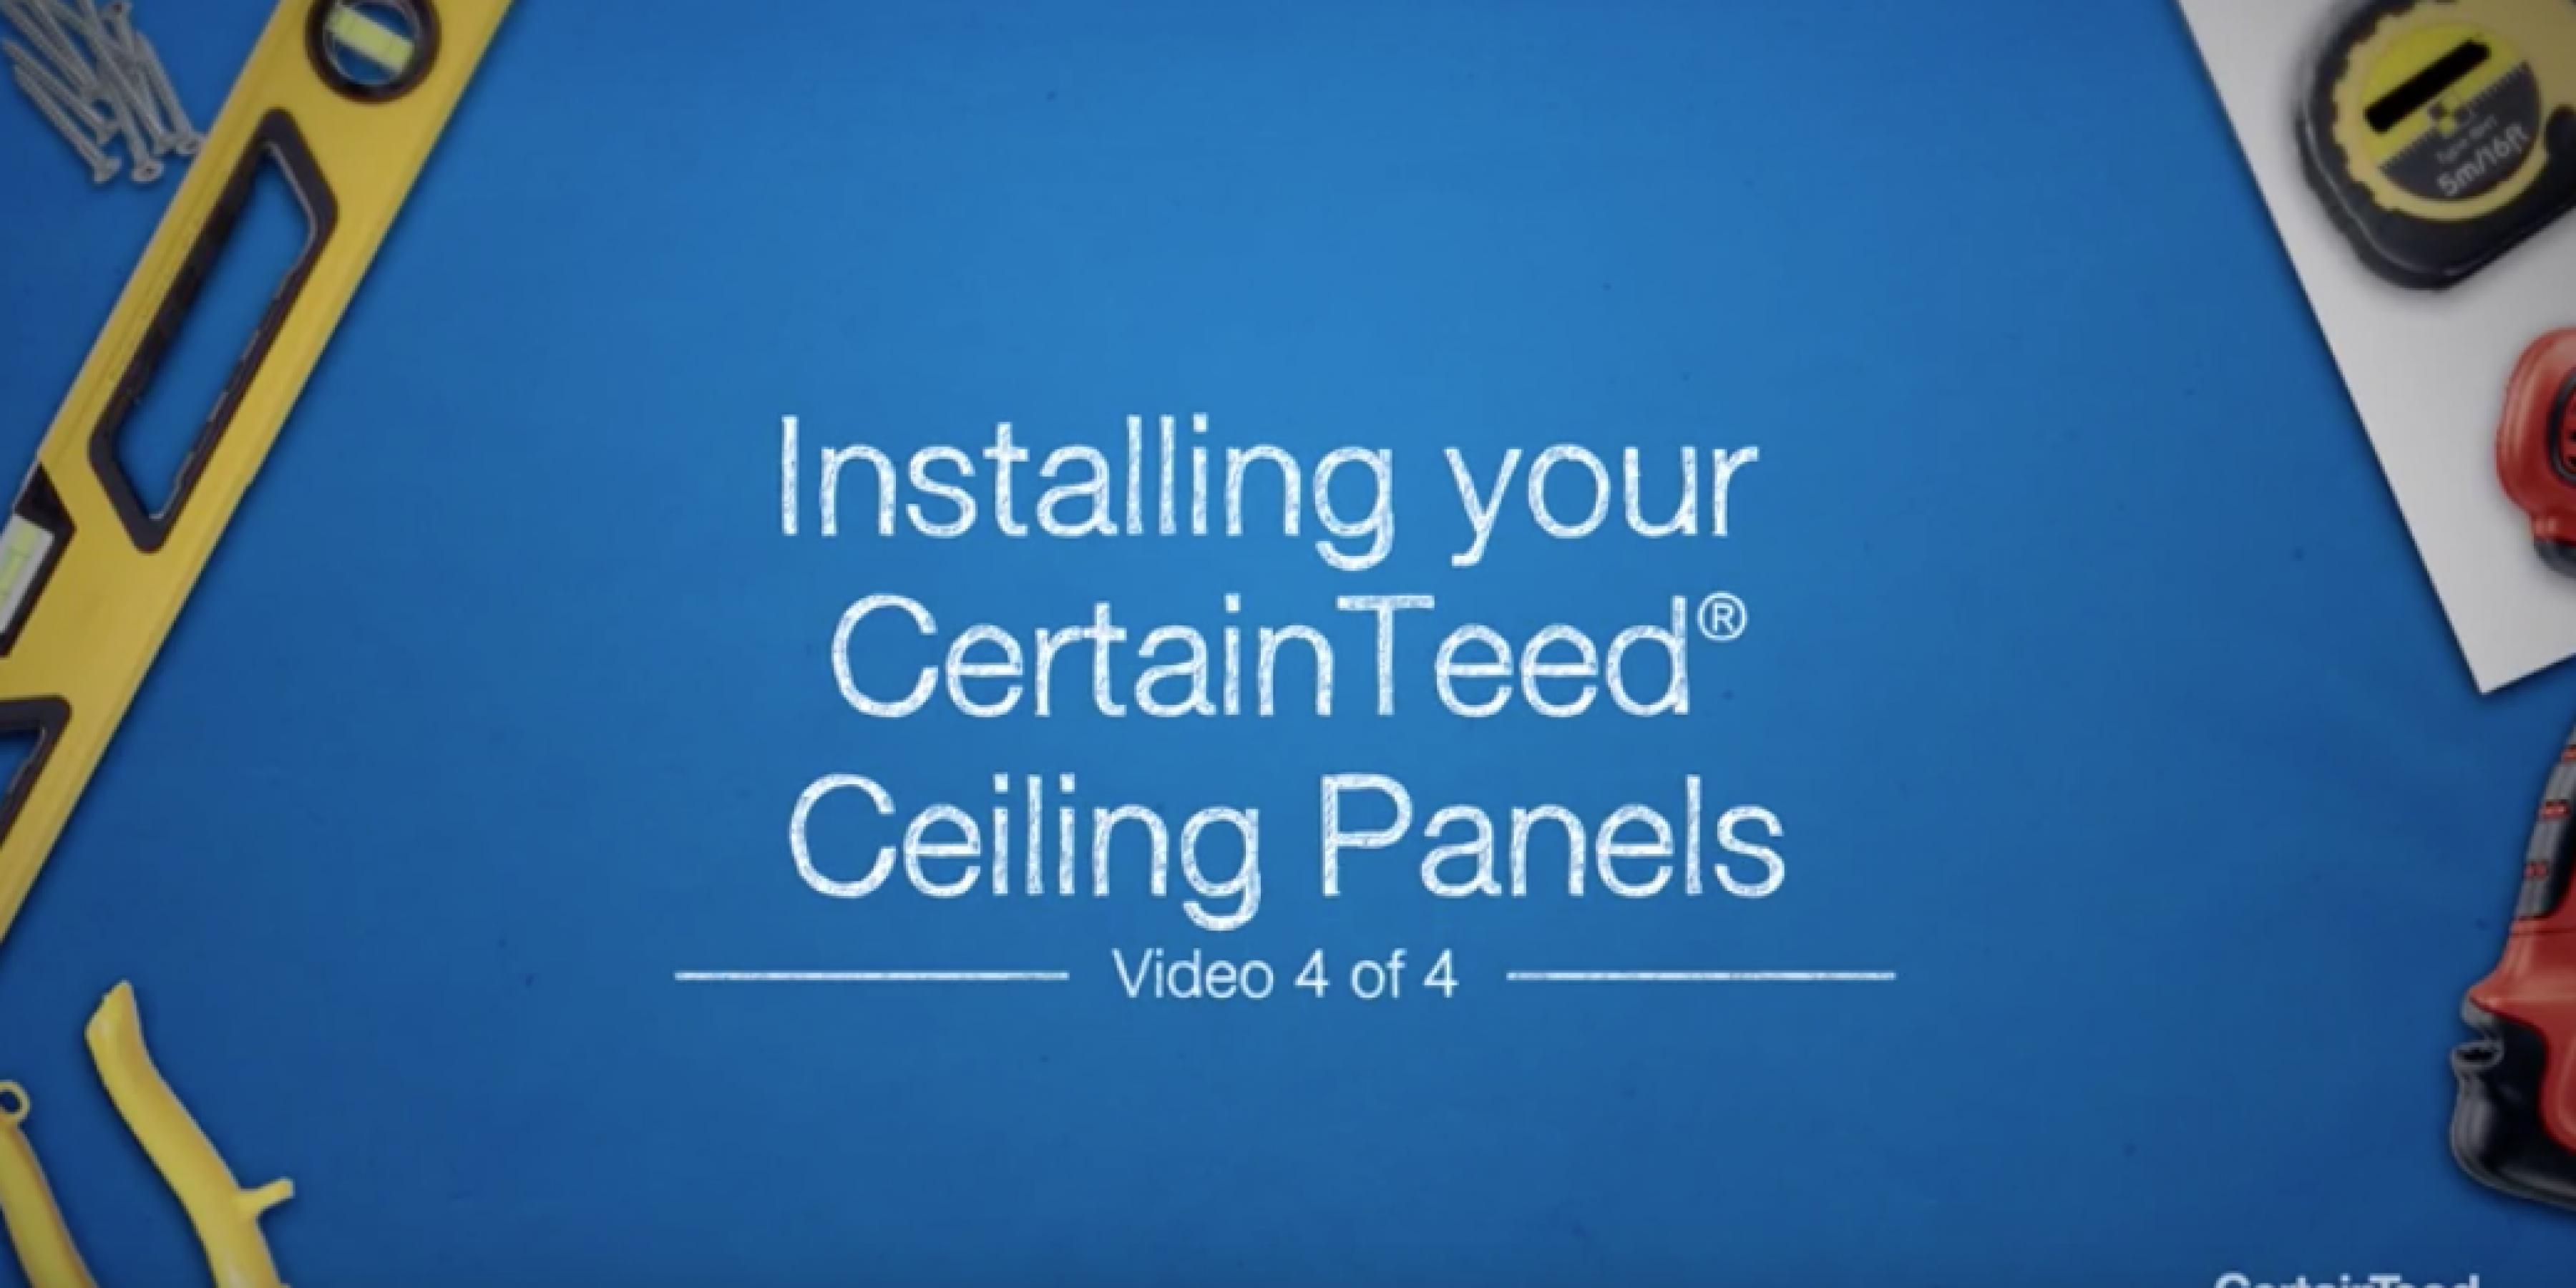 How-To Install Your CertainTeed® Ceiling Panels